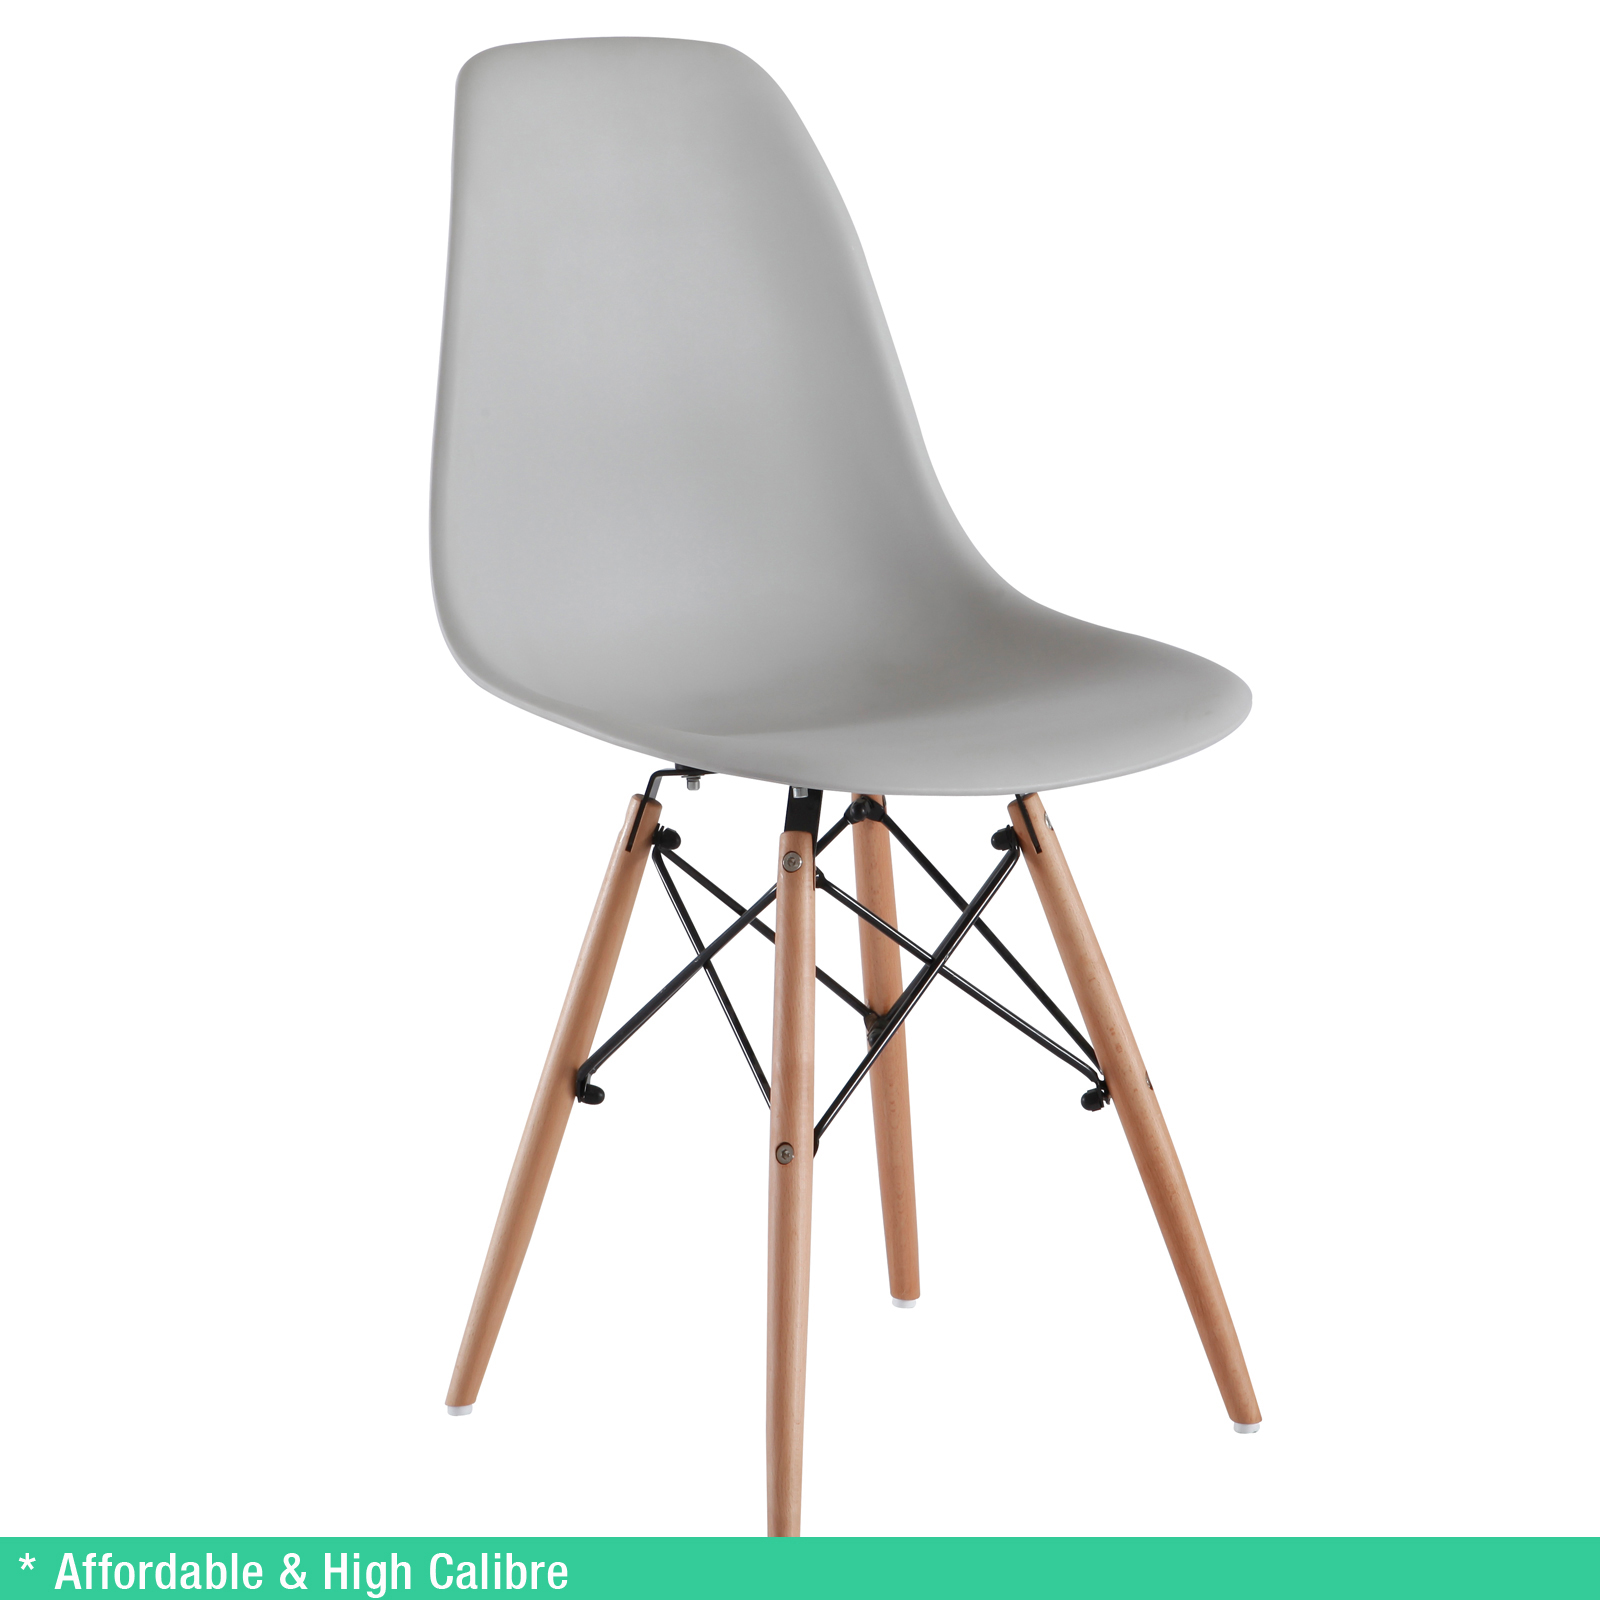 8 X Retro Replica Eames Chick DSW Dining Chairs Office Cafe Kitchen Grey